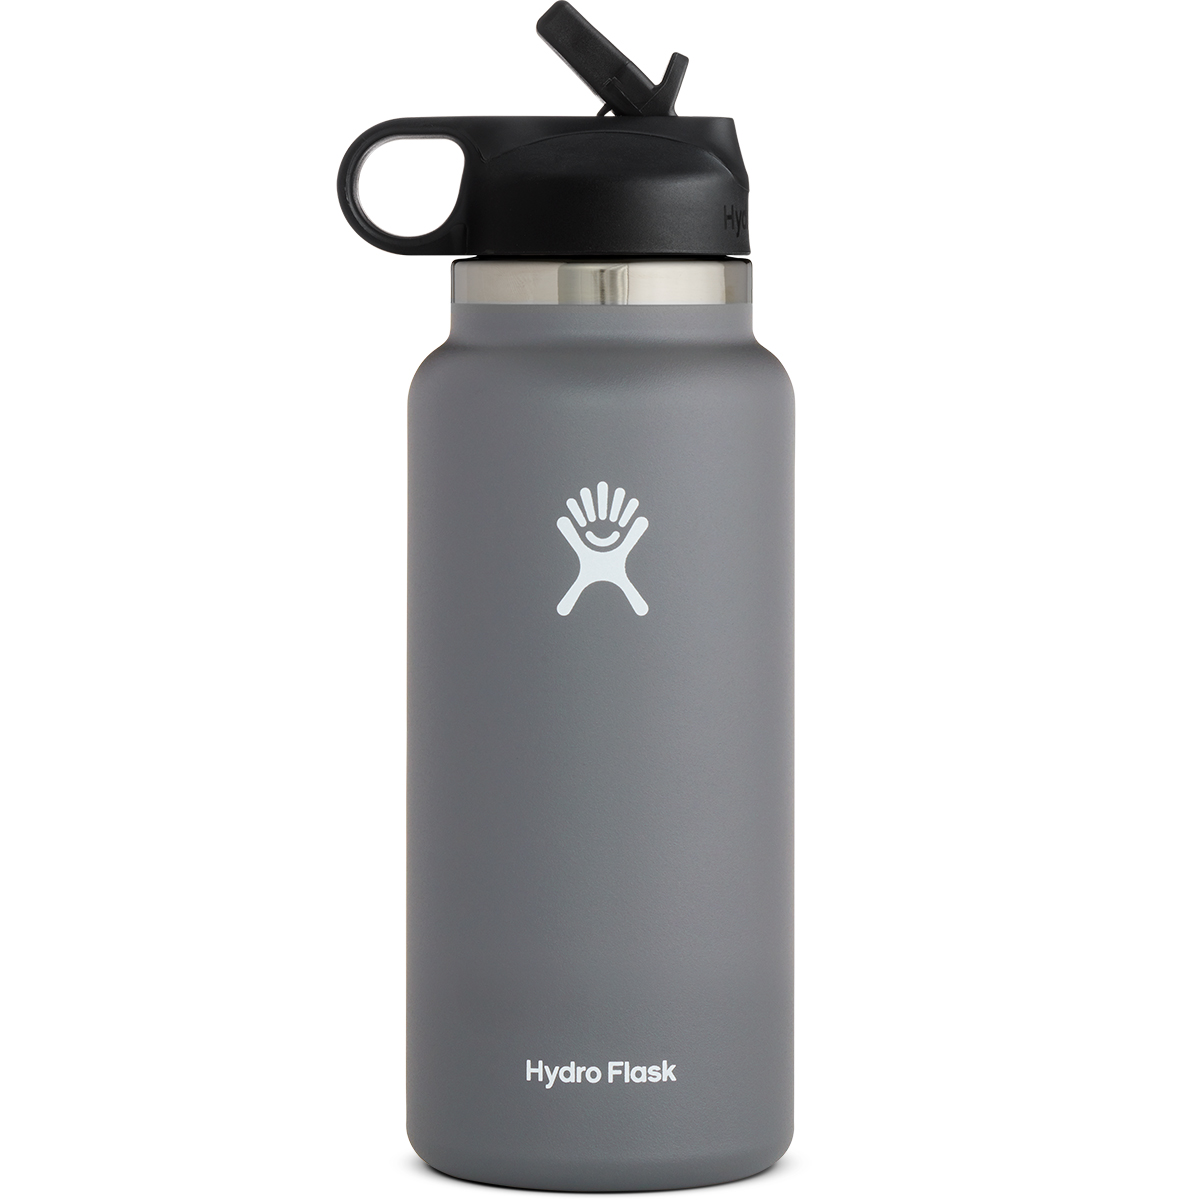 Hydro Flask 32Oz. Wide Mouth Bottle With Straw Lid